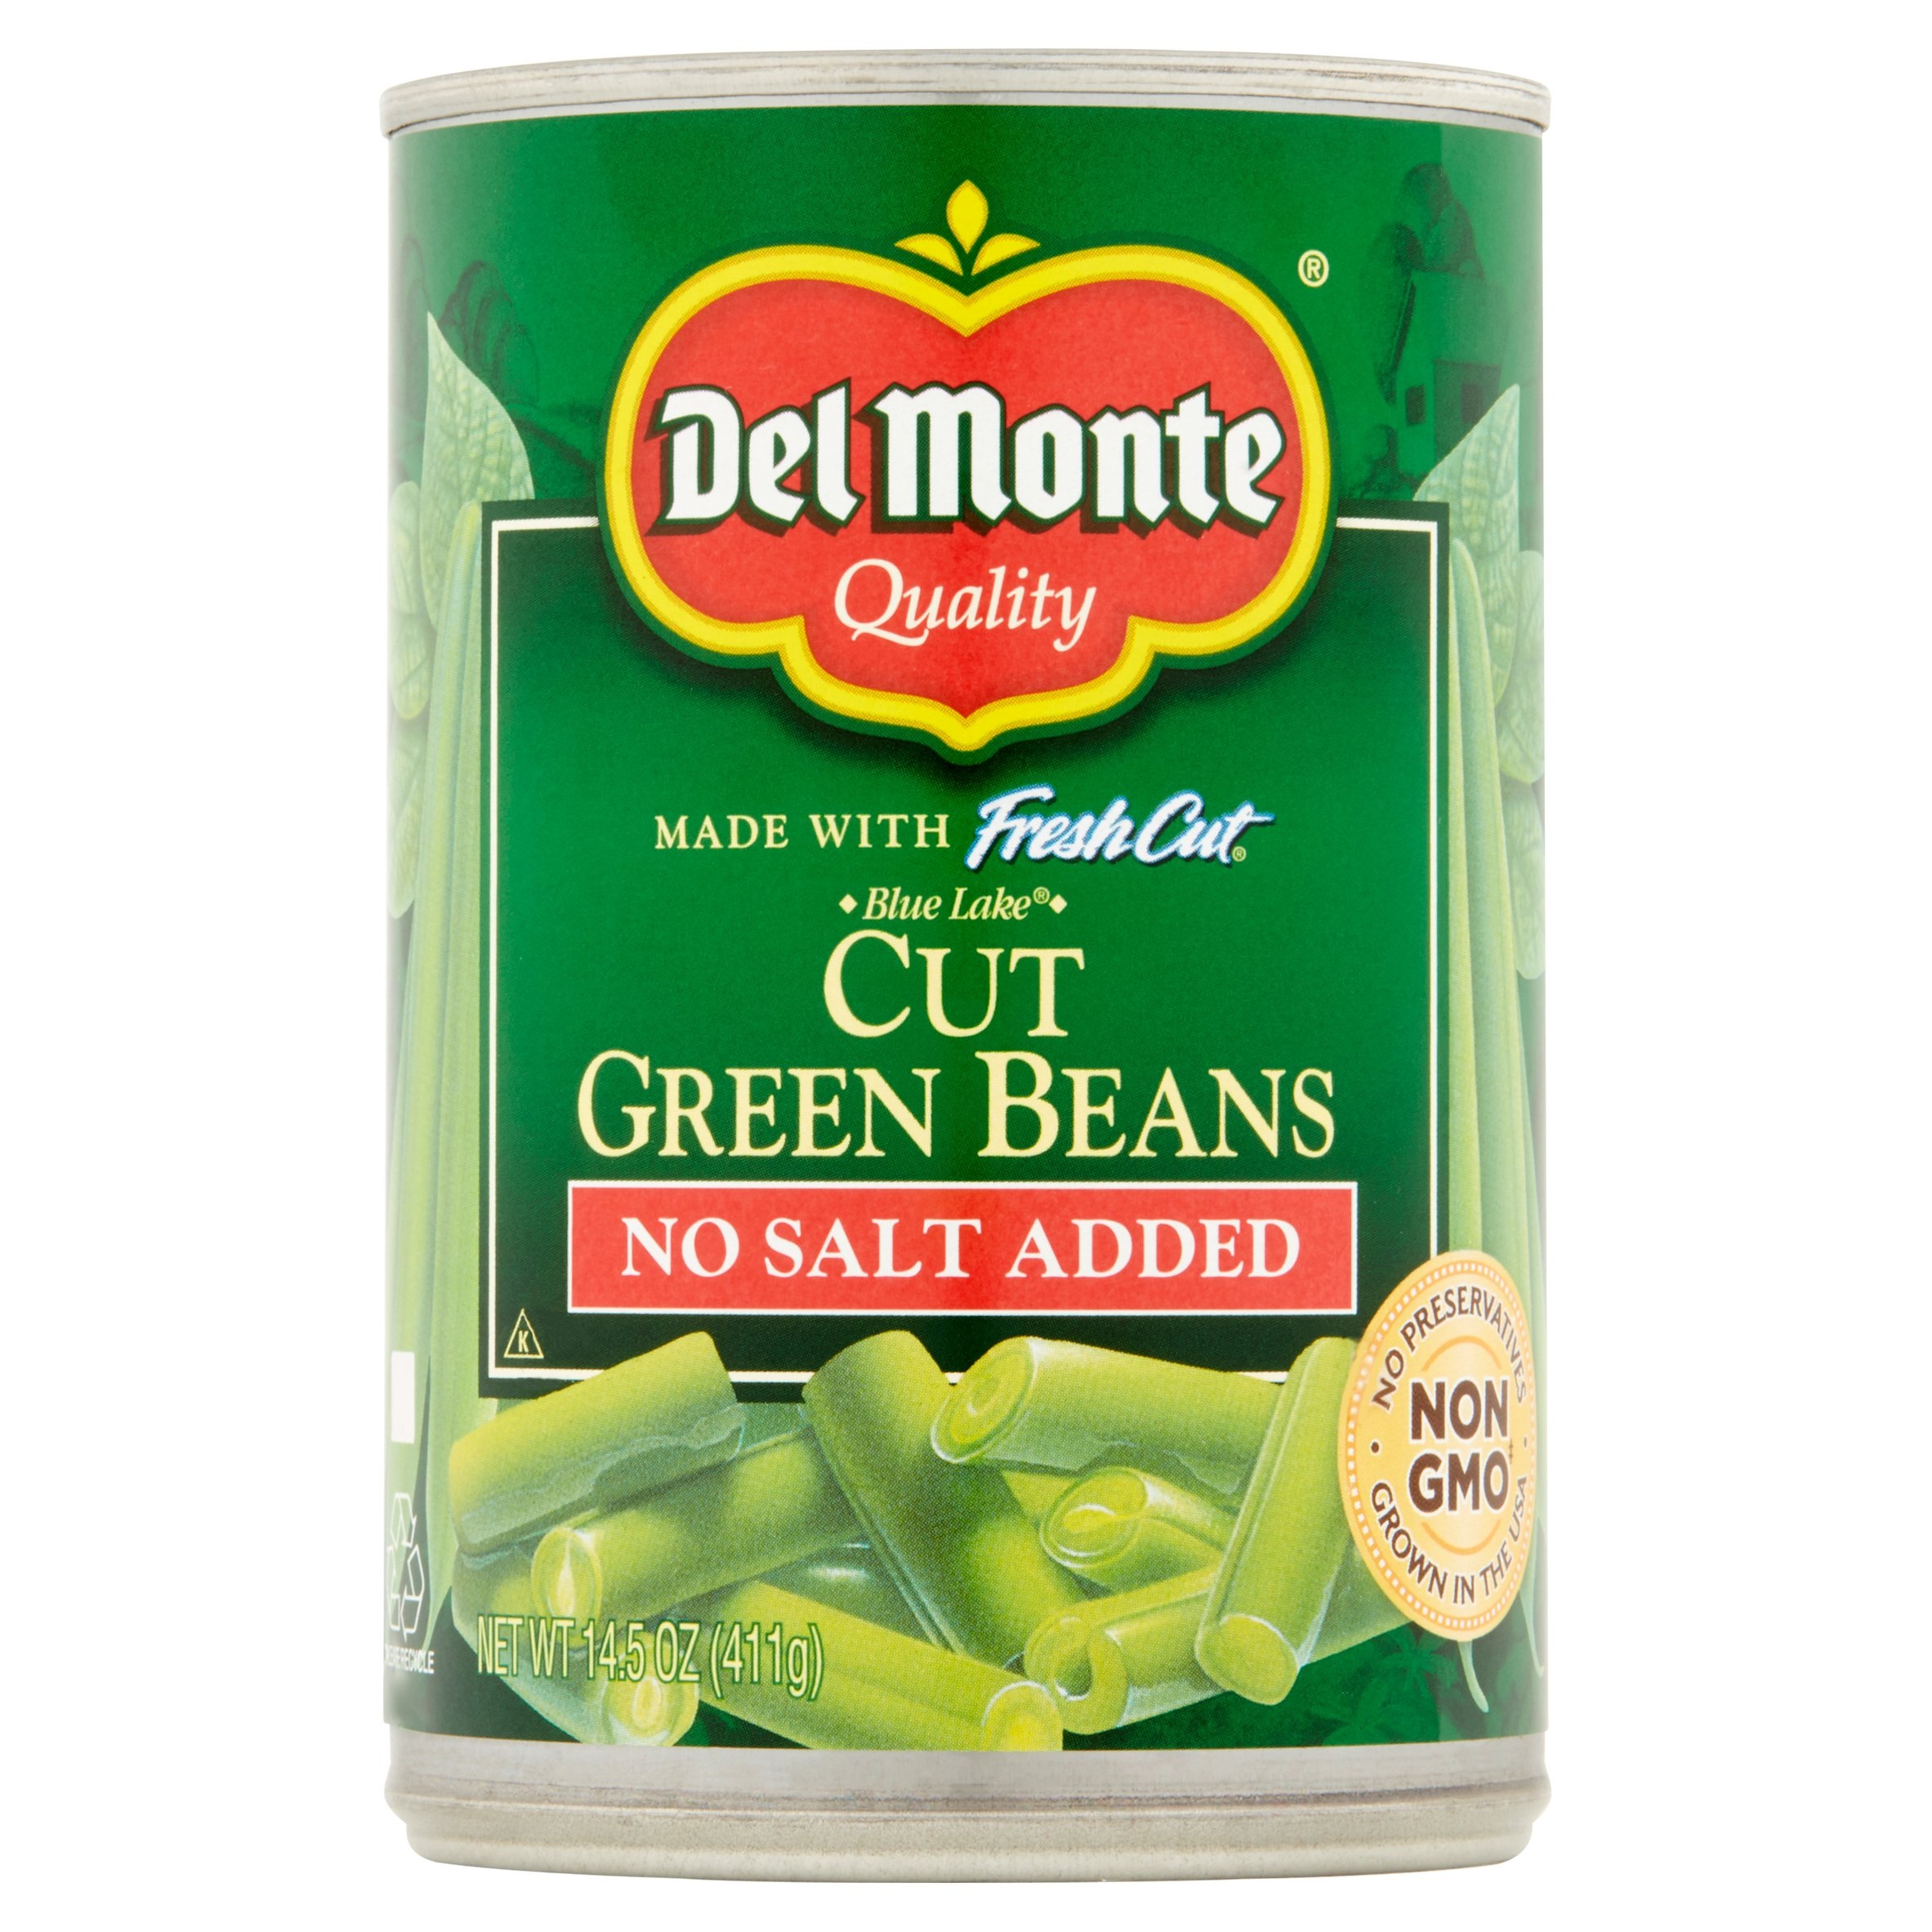 Del Monte Fresh Cut Blue Lake Cut Green Beans, No Salt Added, 14.5 Oz